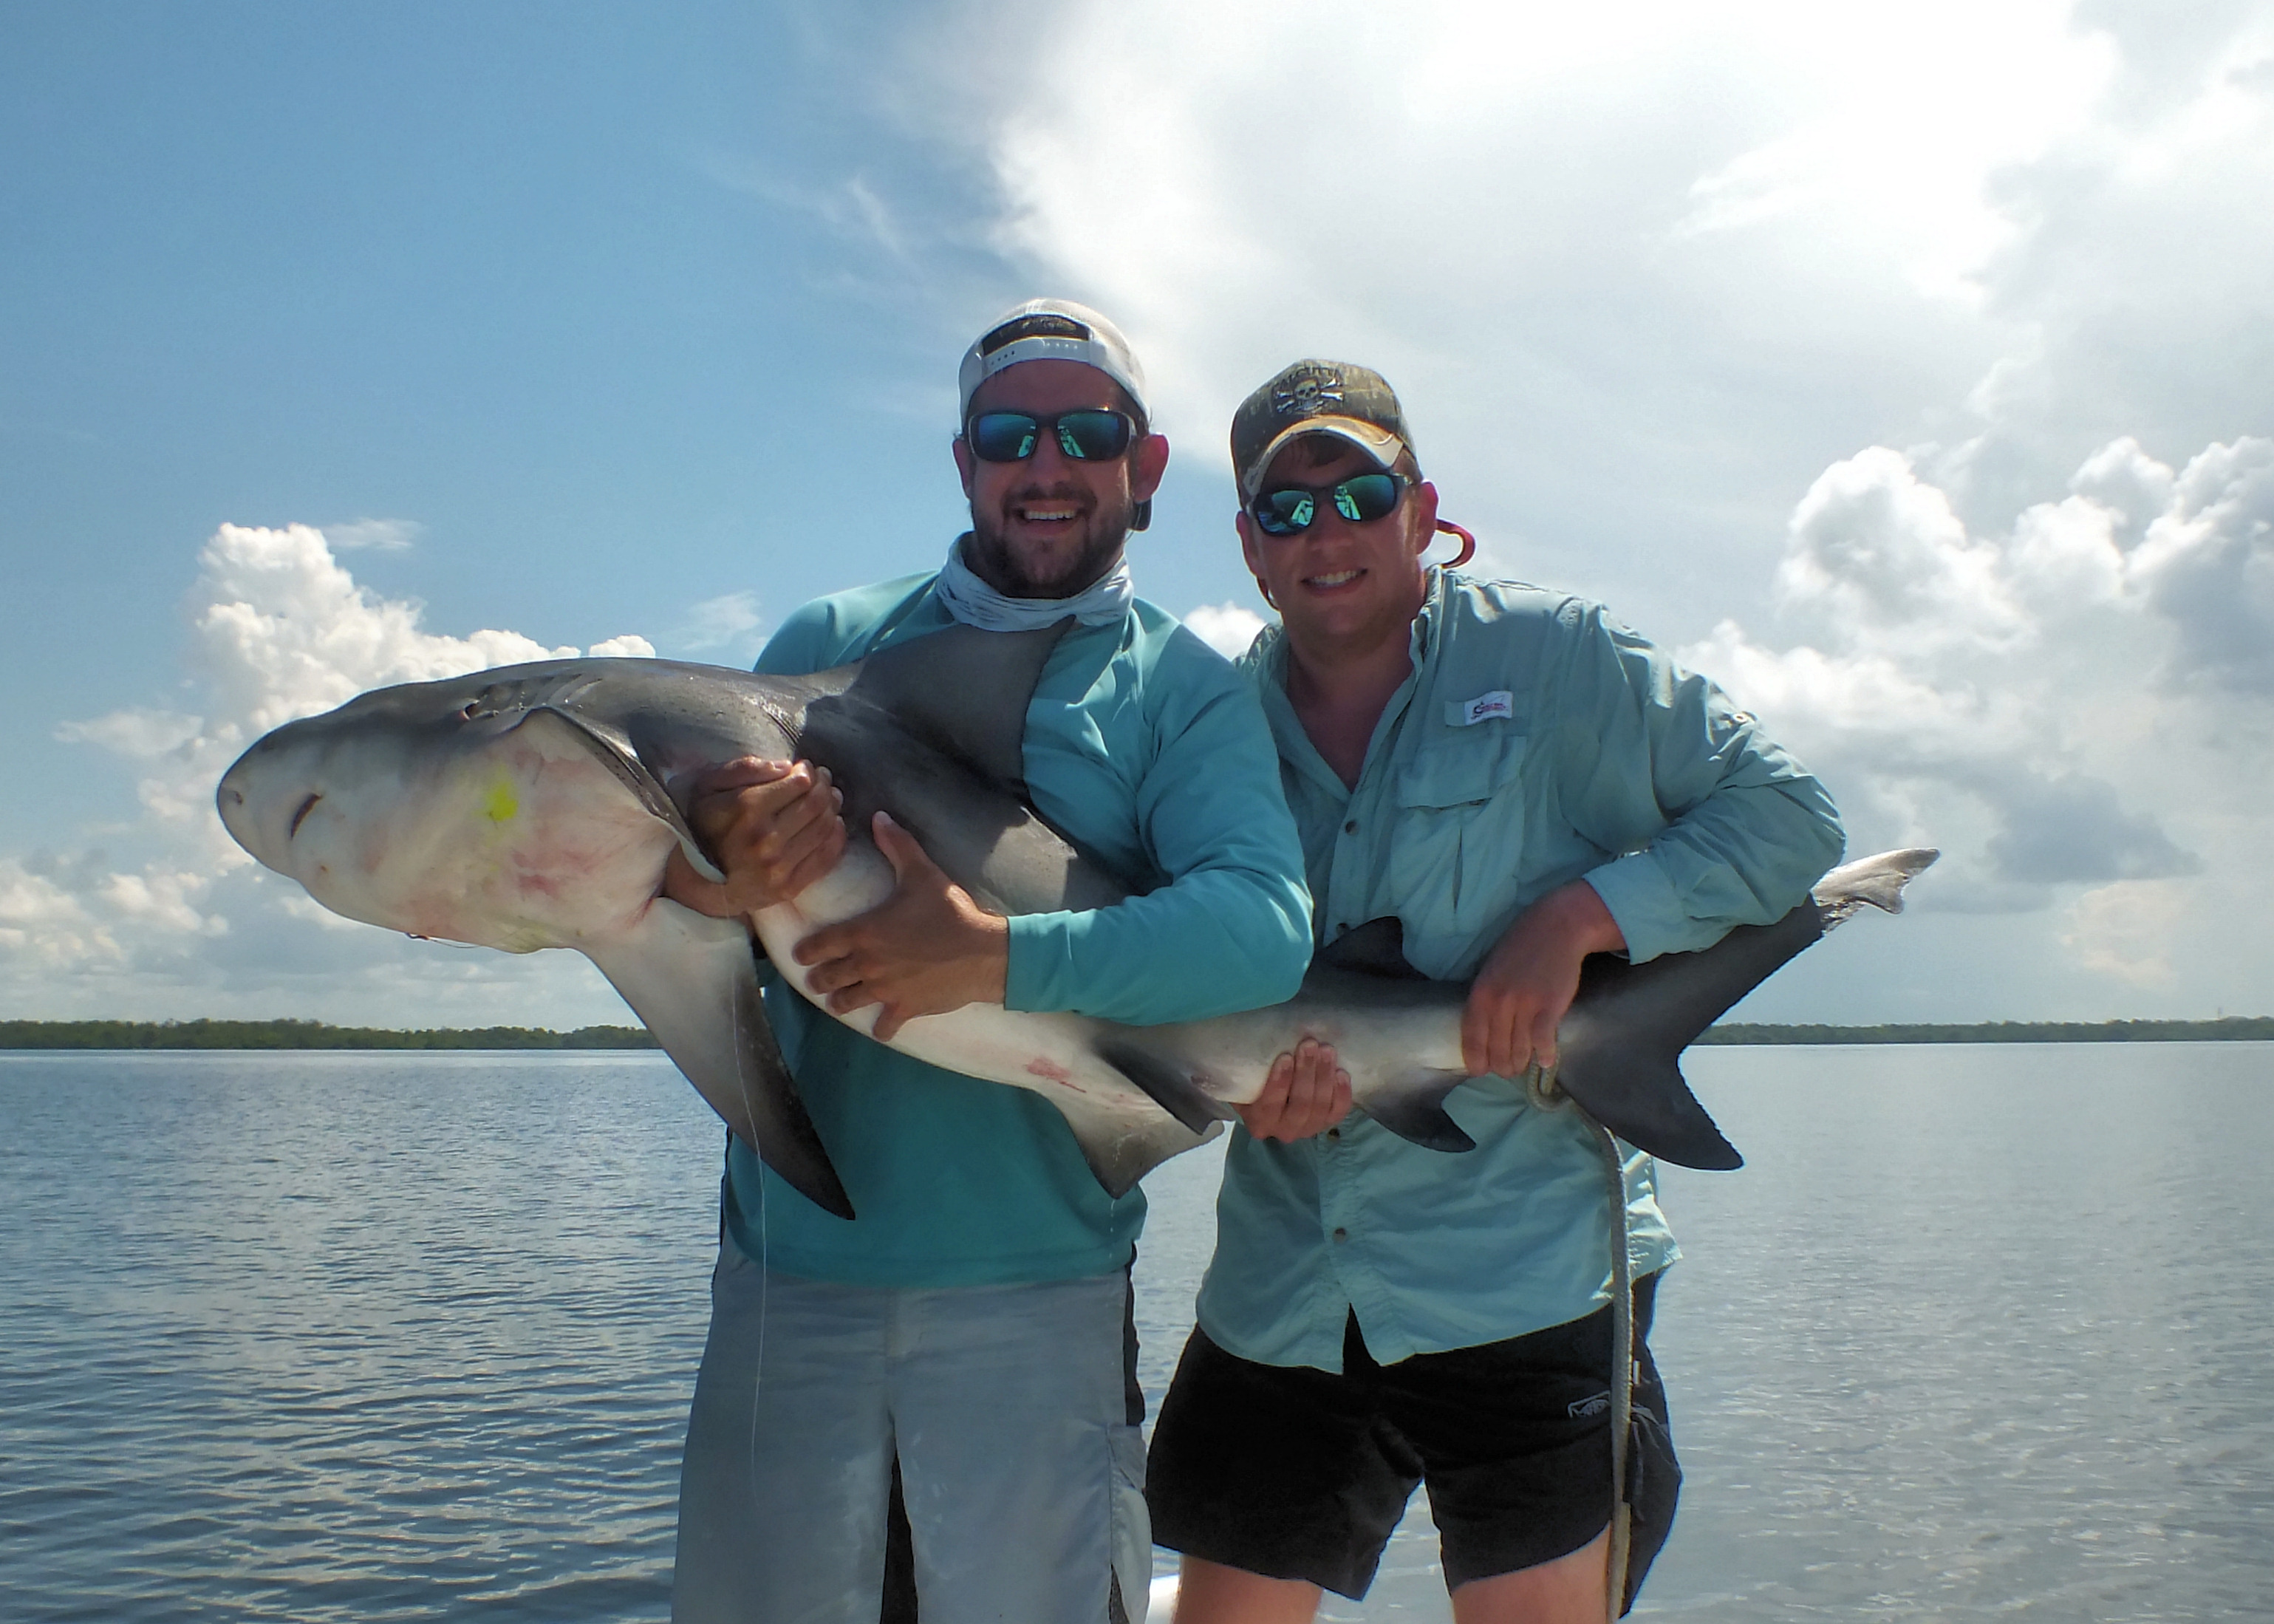 Sanibel island fishing shark sanibel fishing charters for Sanibel island fishing charters